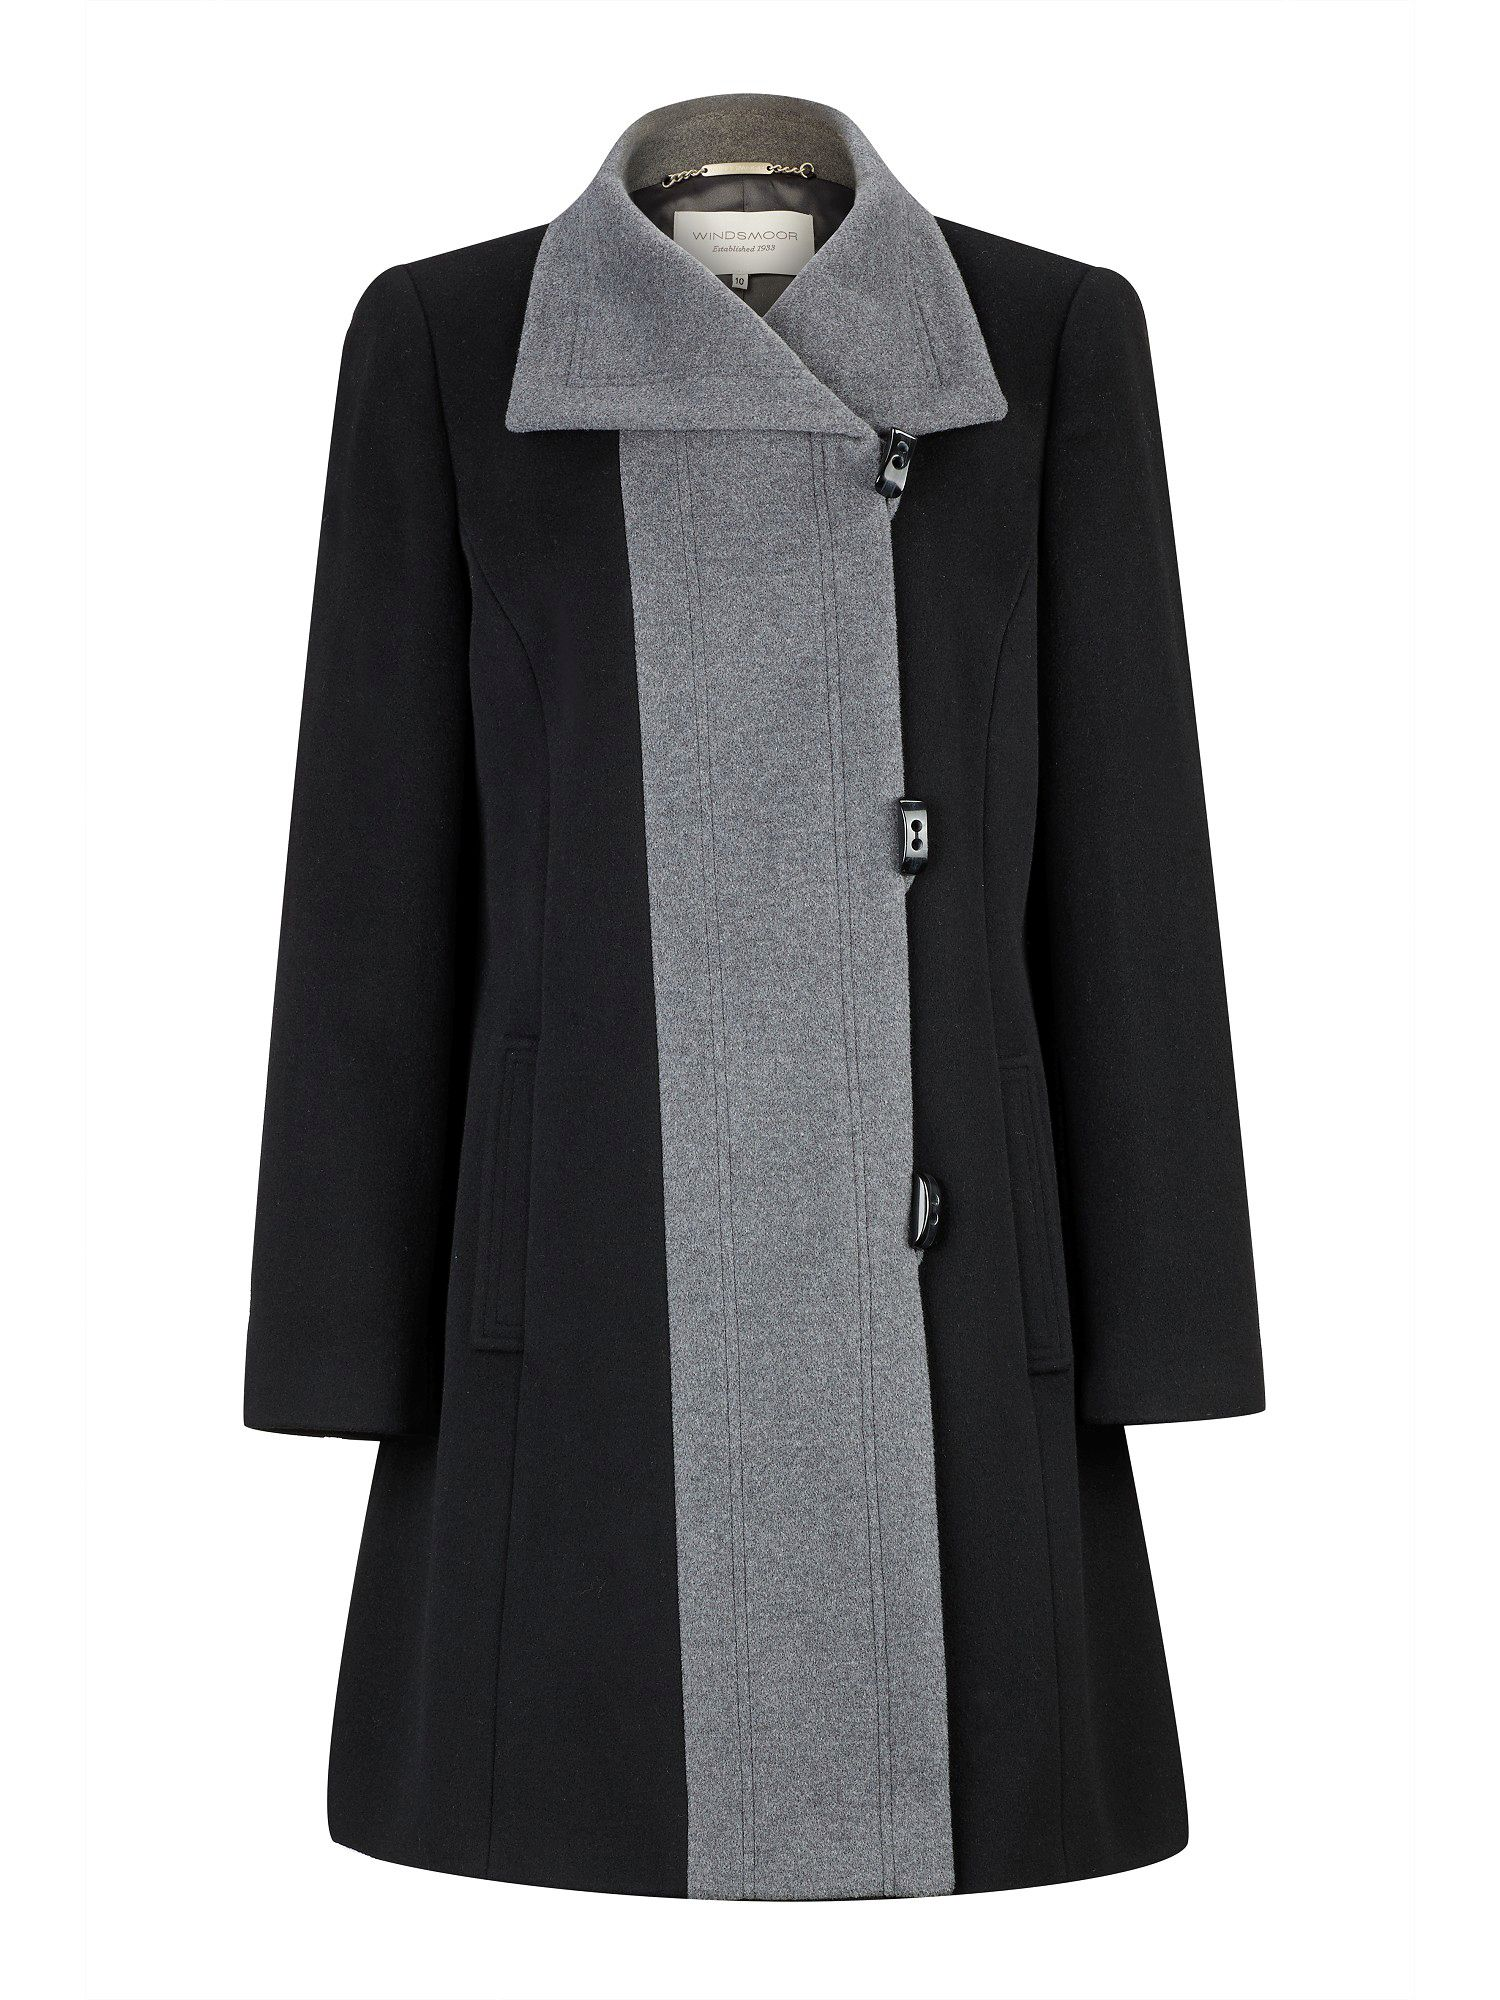 Mid-length Black and Smoke Coat